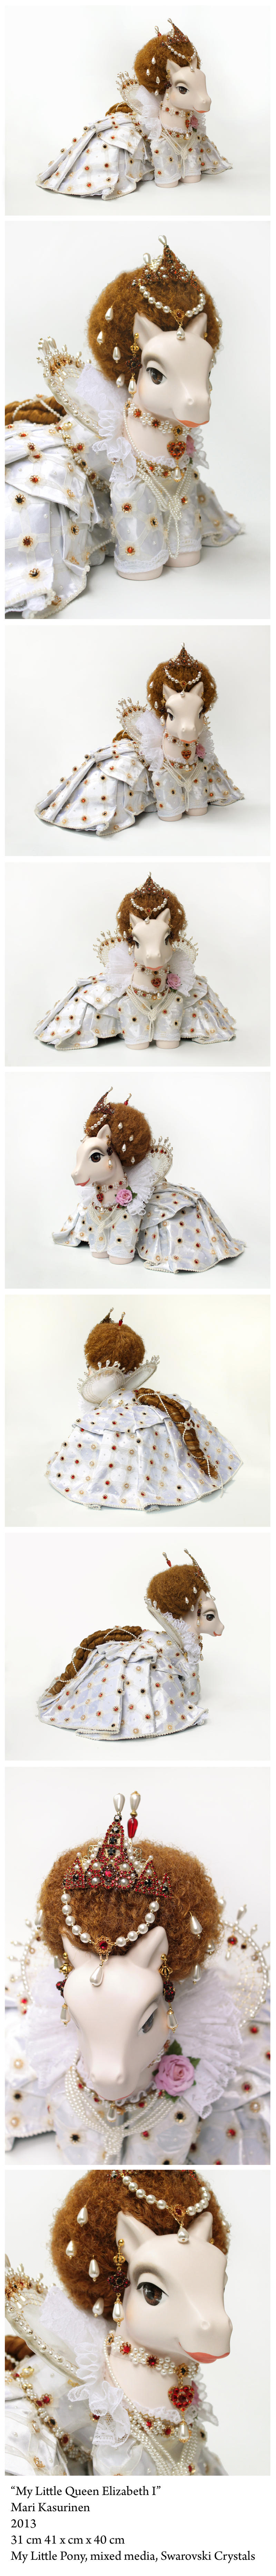 My Little Queen Elizabeth I by Spippo